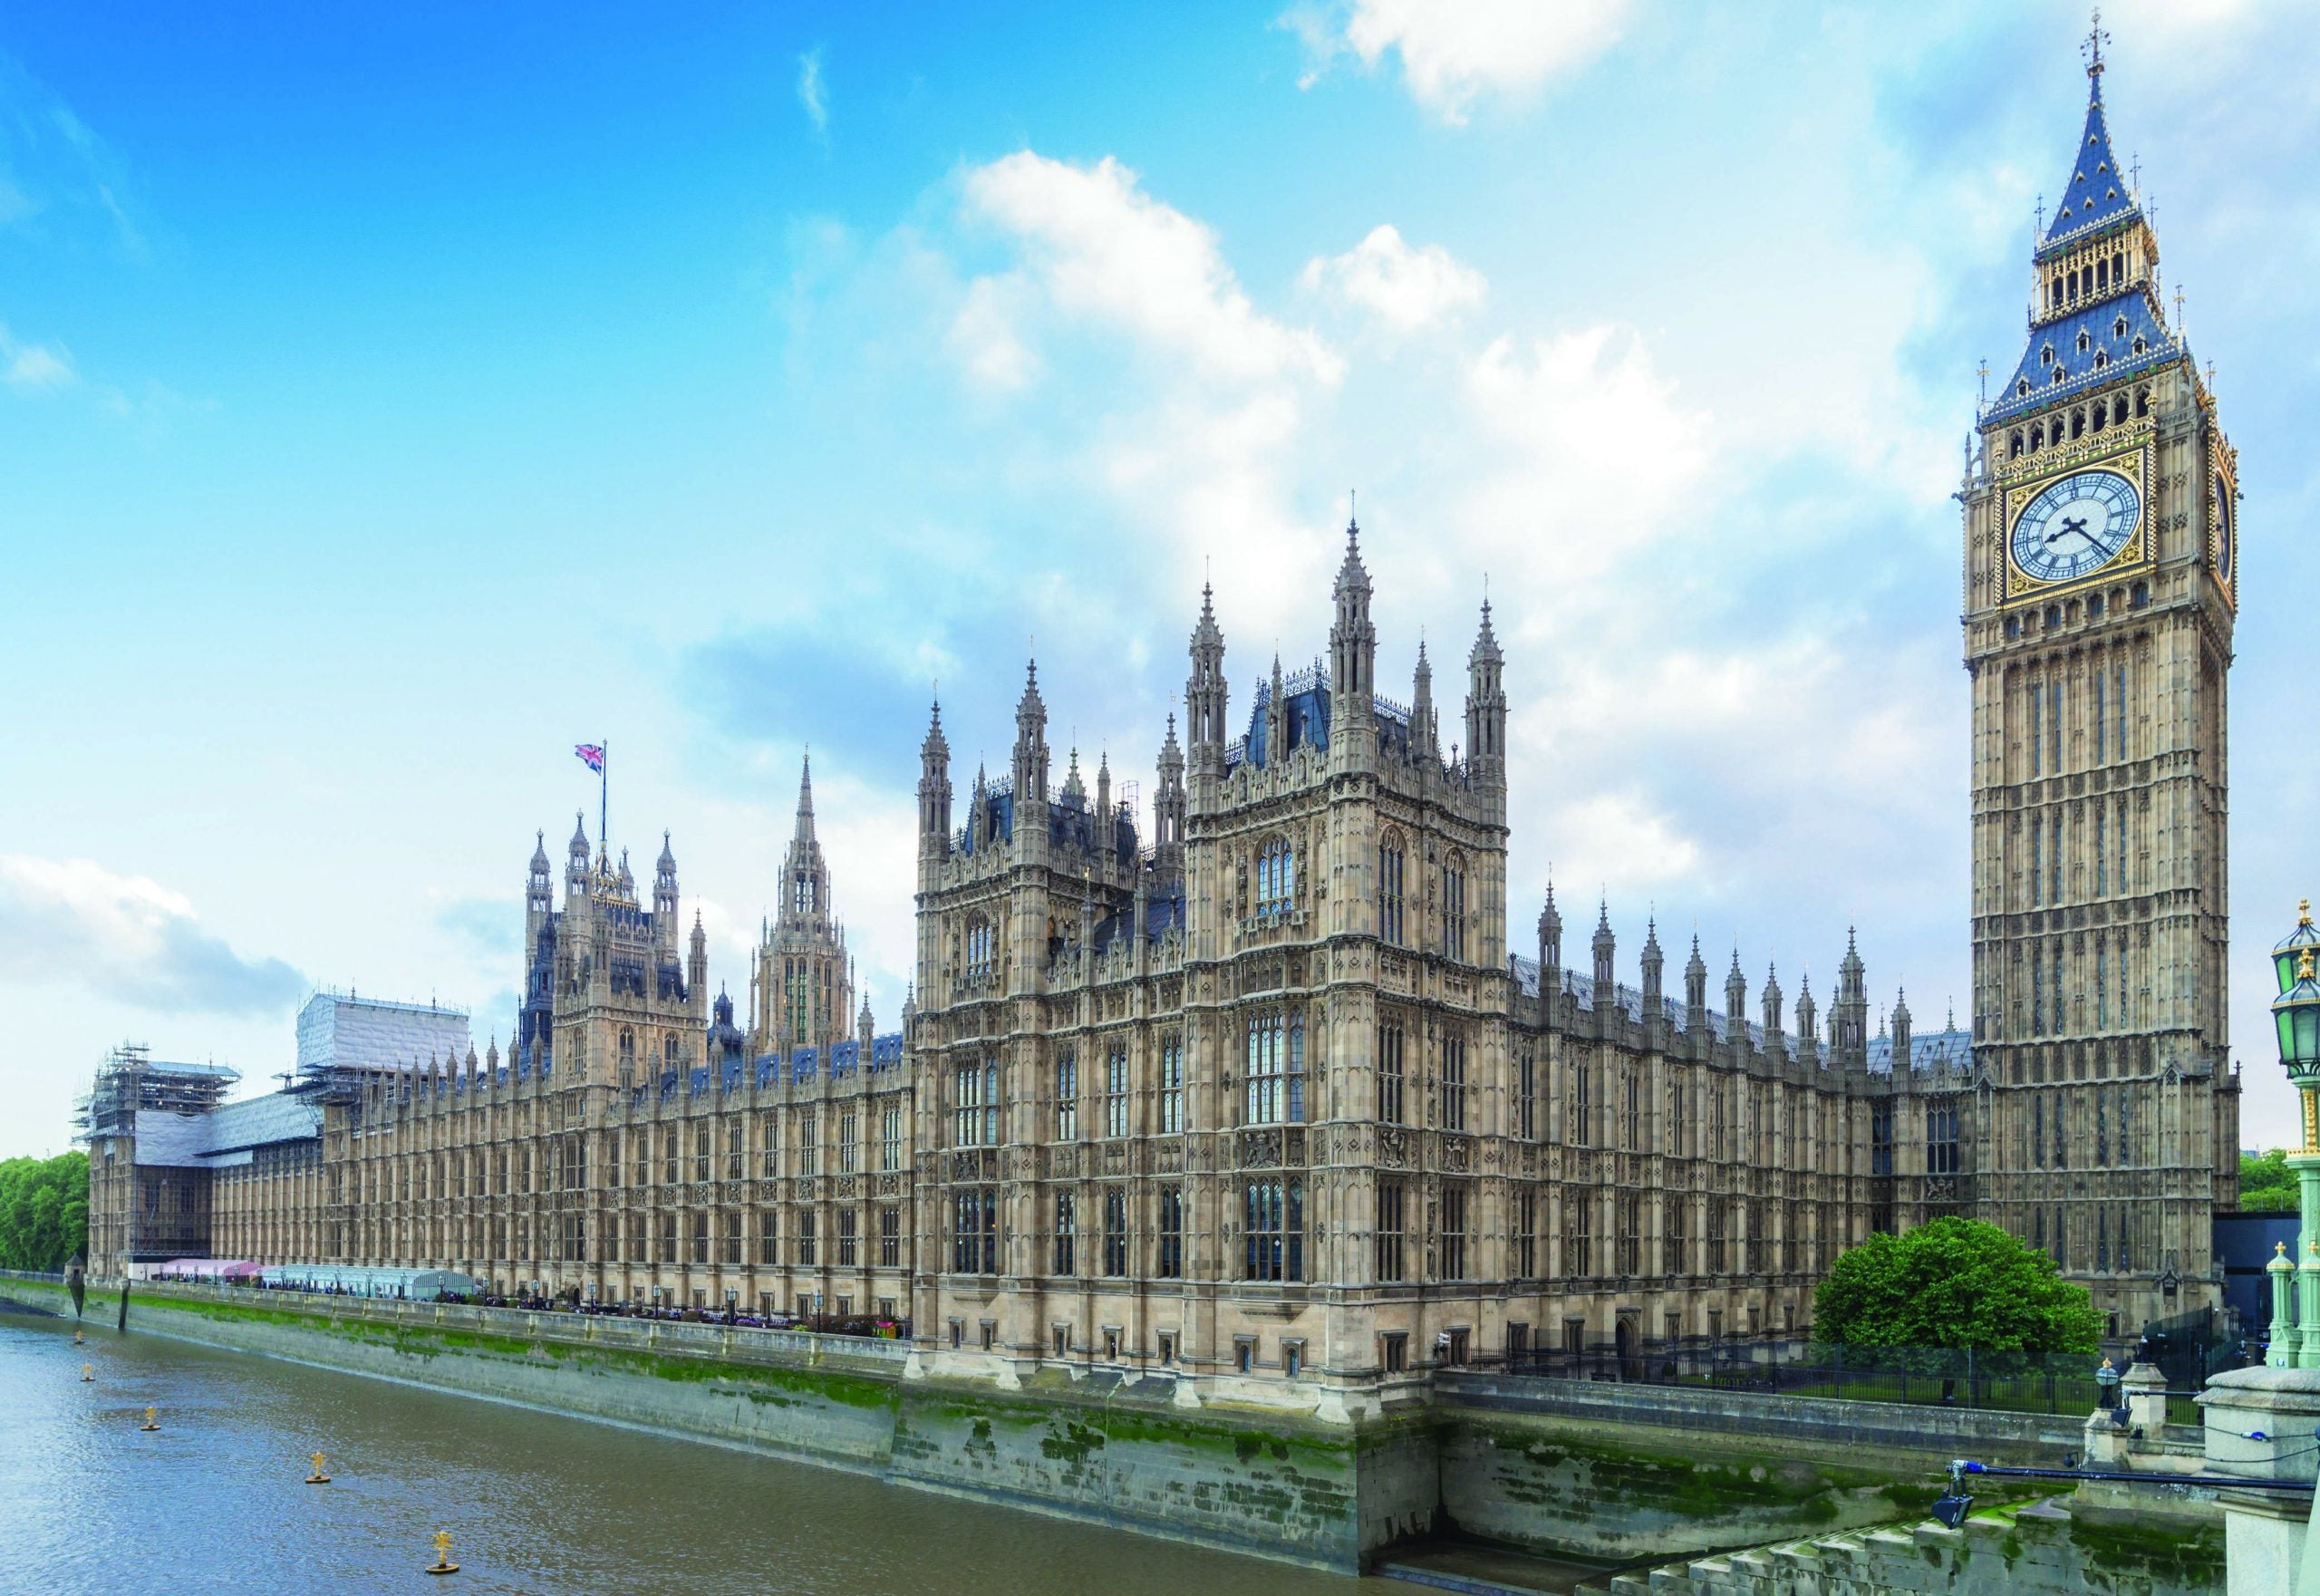 Apprenticeships should carry the same weight as Oxbridge degrees